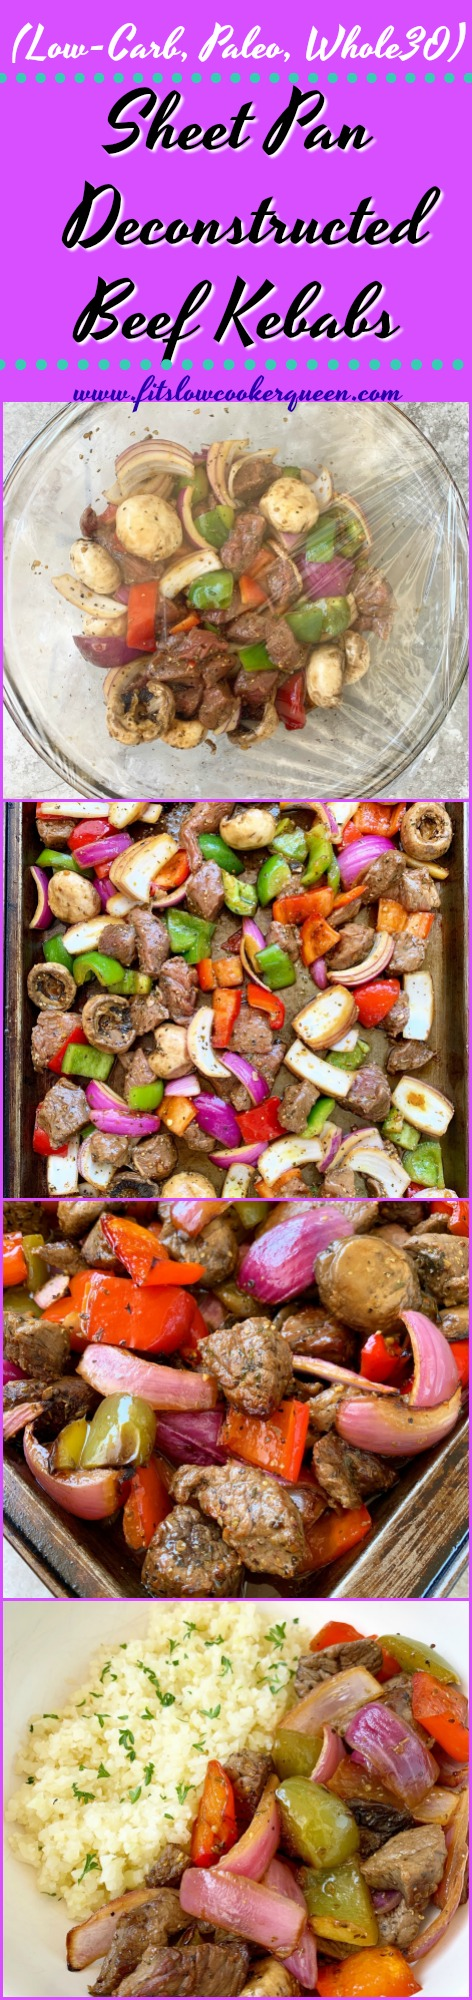 another pinterest pin for Sheet Pan Deconstructed Beef Kebabs (Low-Carb, Paleo, Whole30)